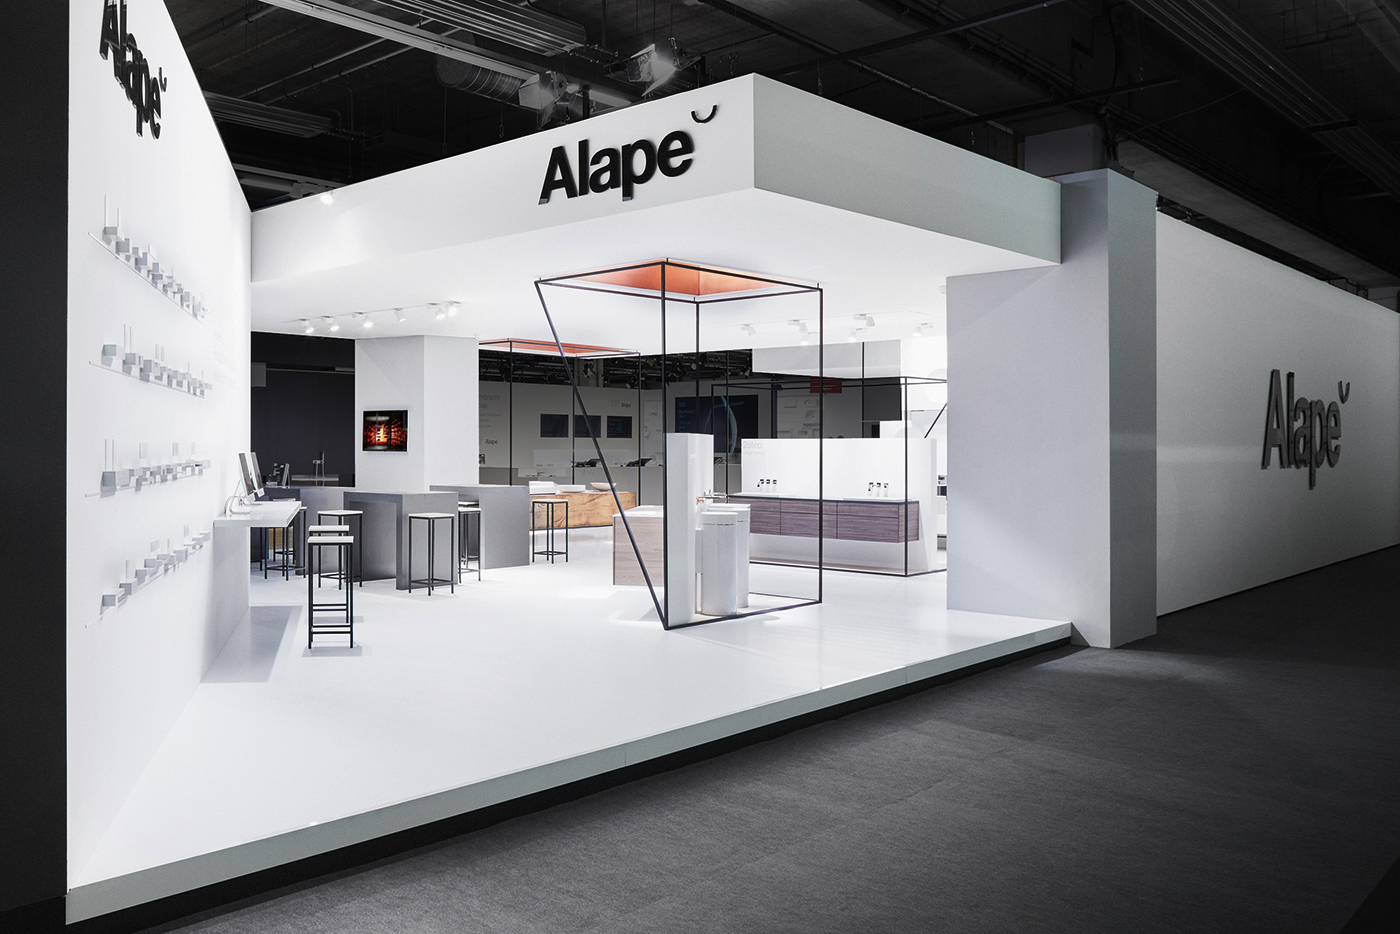 Exhibition Stand Design Materials : Alape exhibition design mindsparkle mag